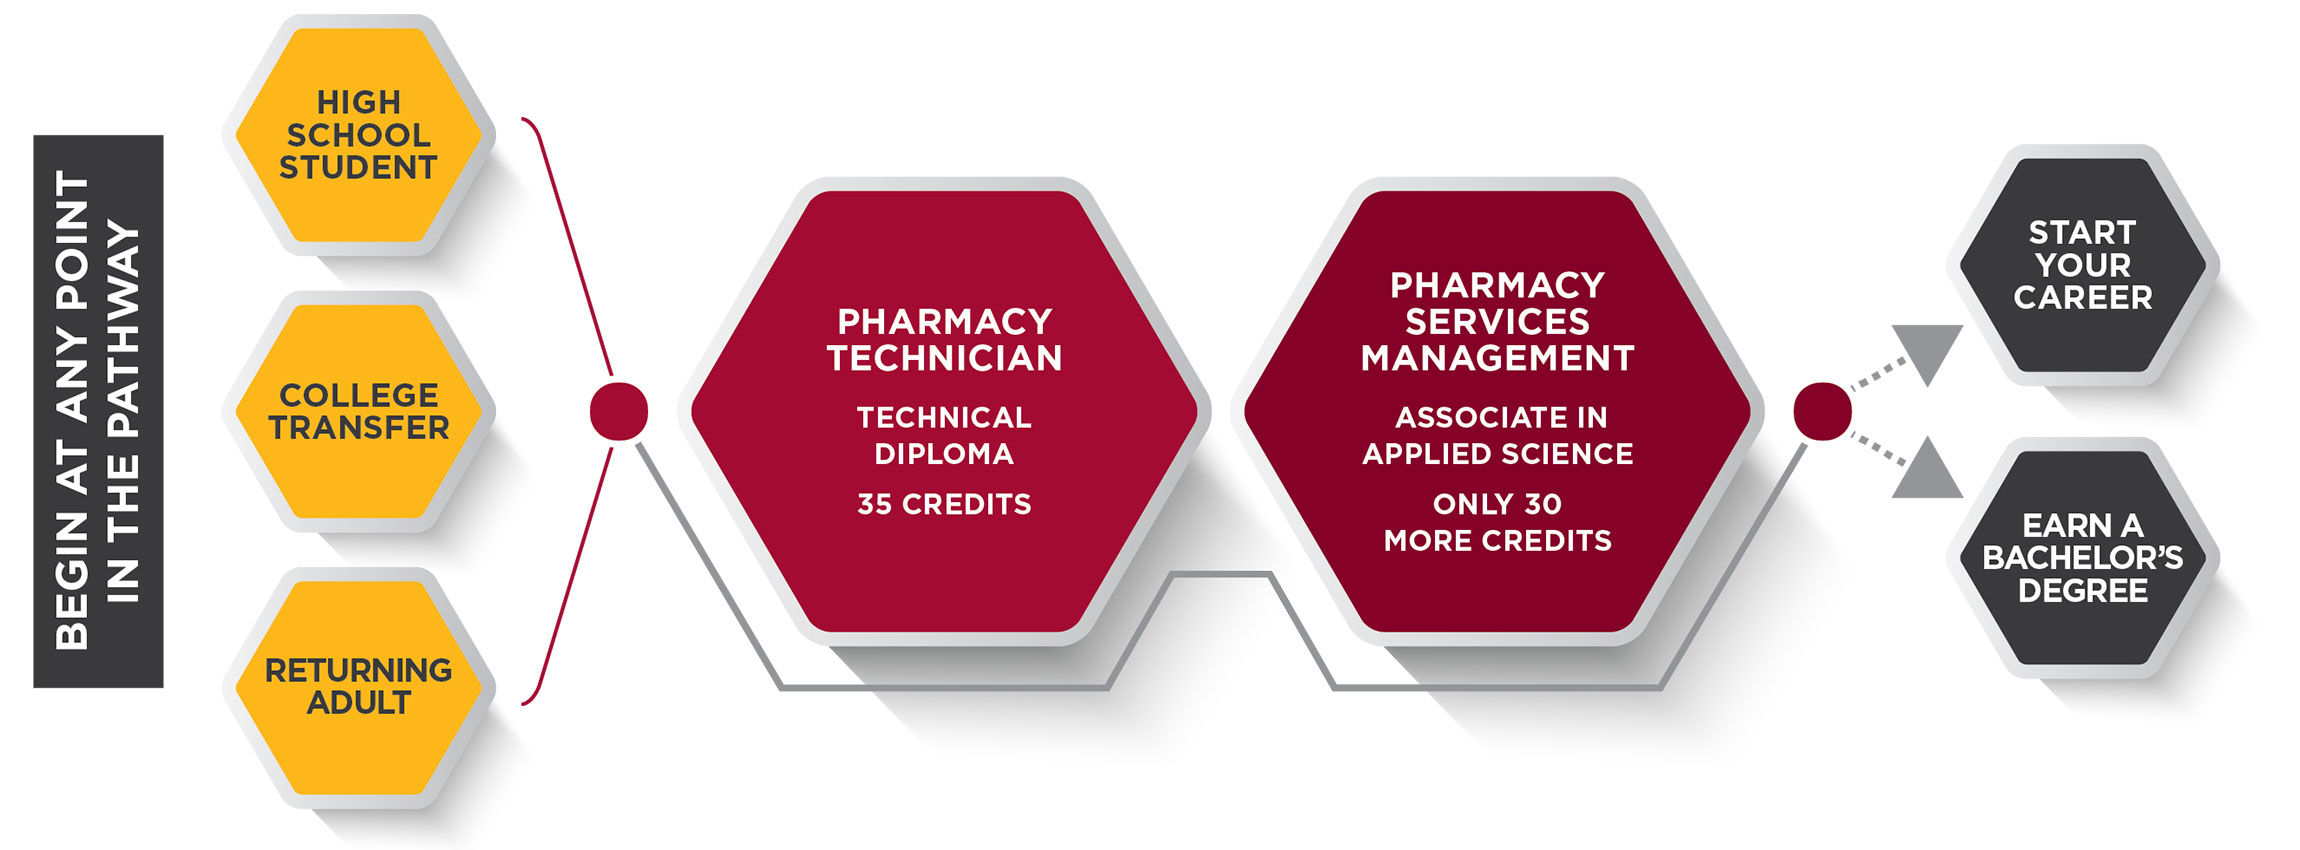 Pharmacy Services Management Pathway